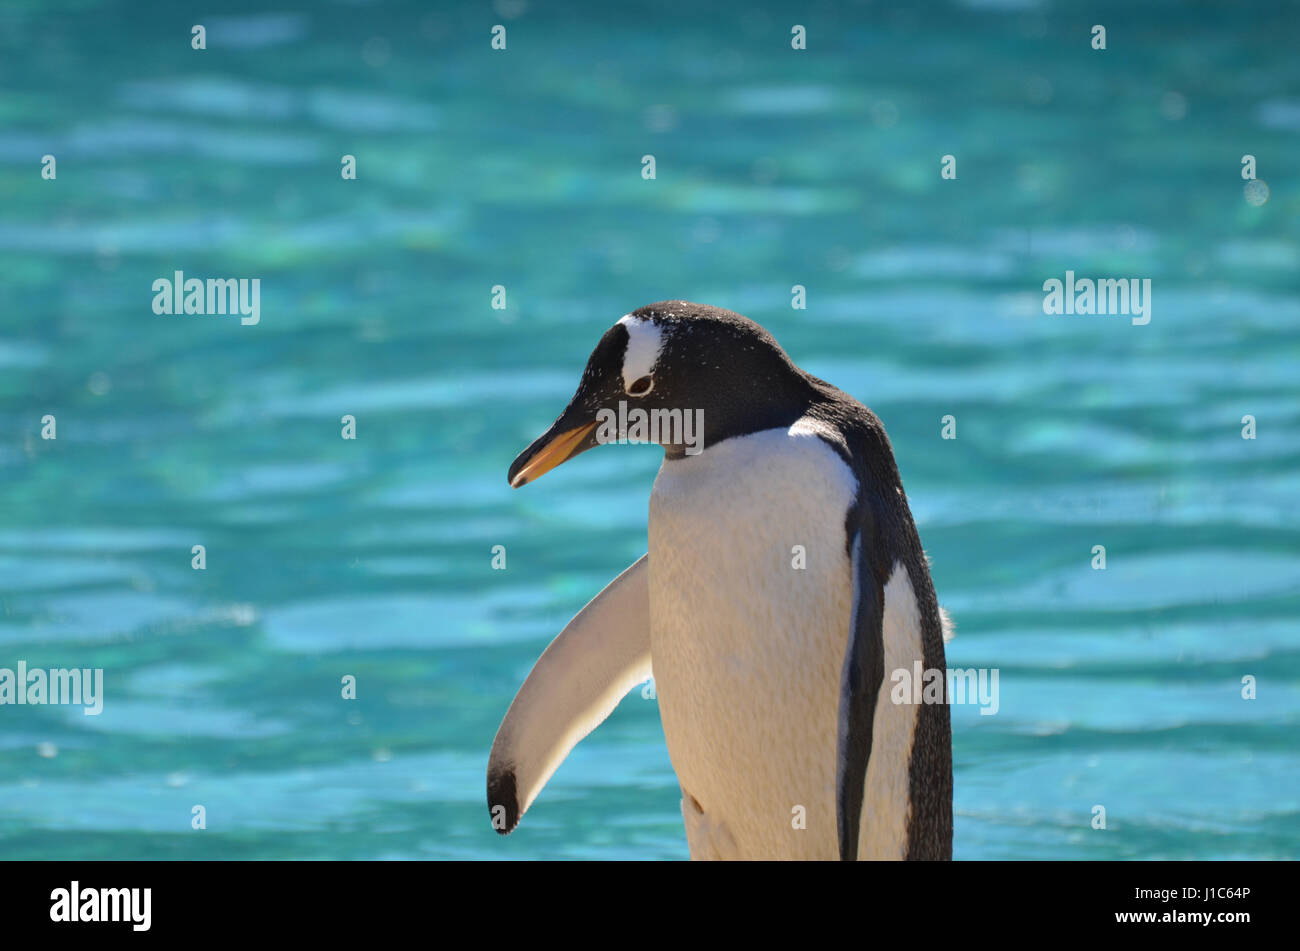 Adorable gentoo penguin standing at the edge of the water. - Stock Image